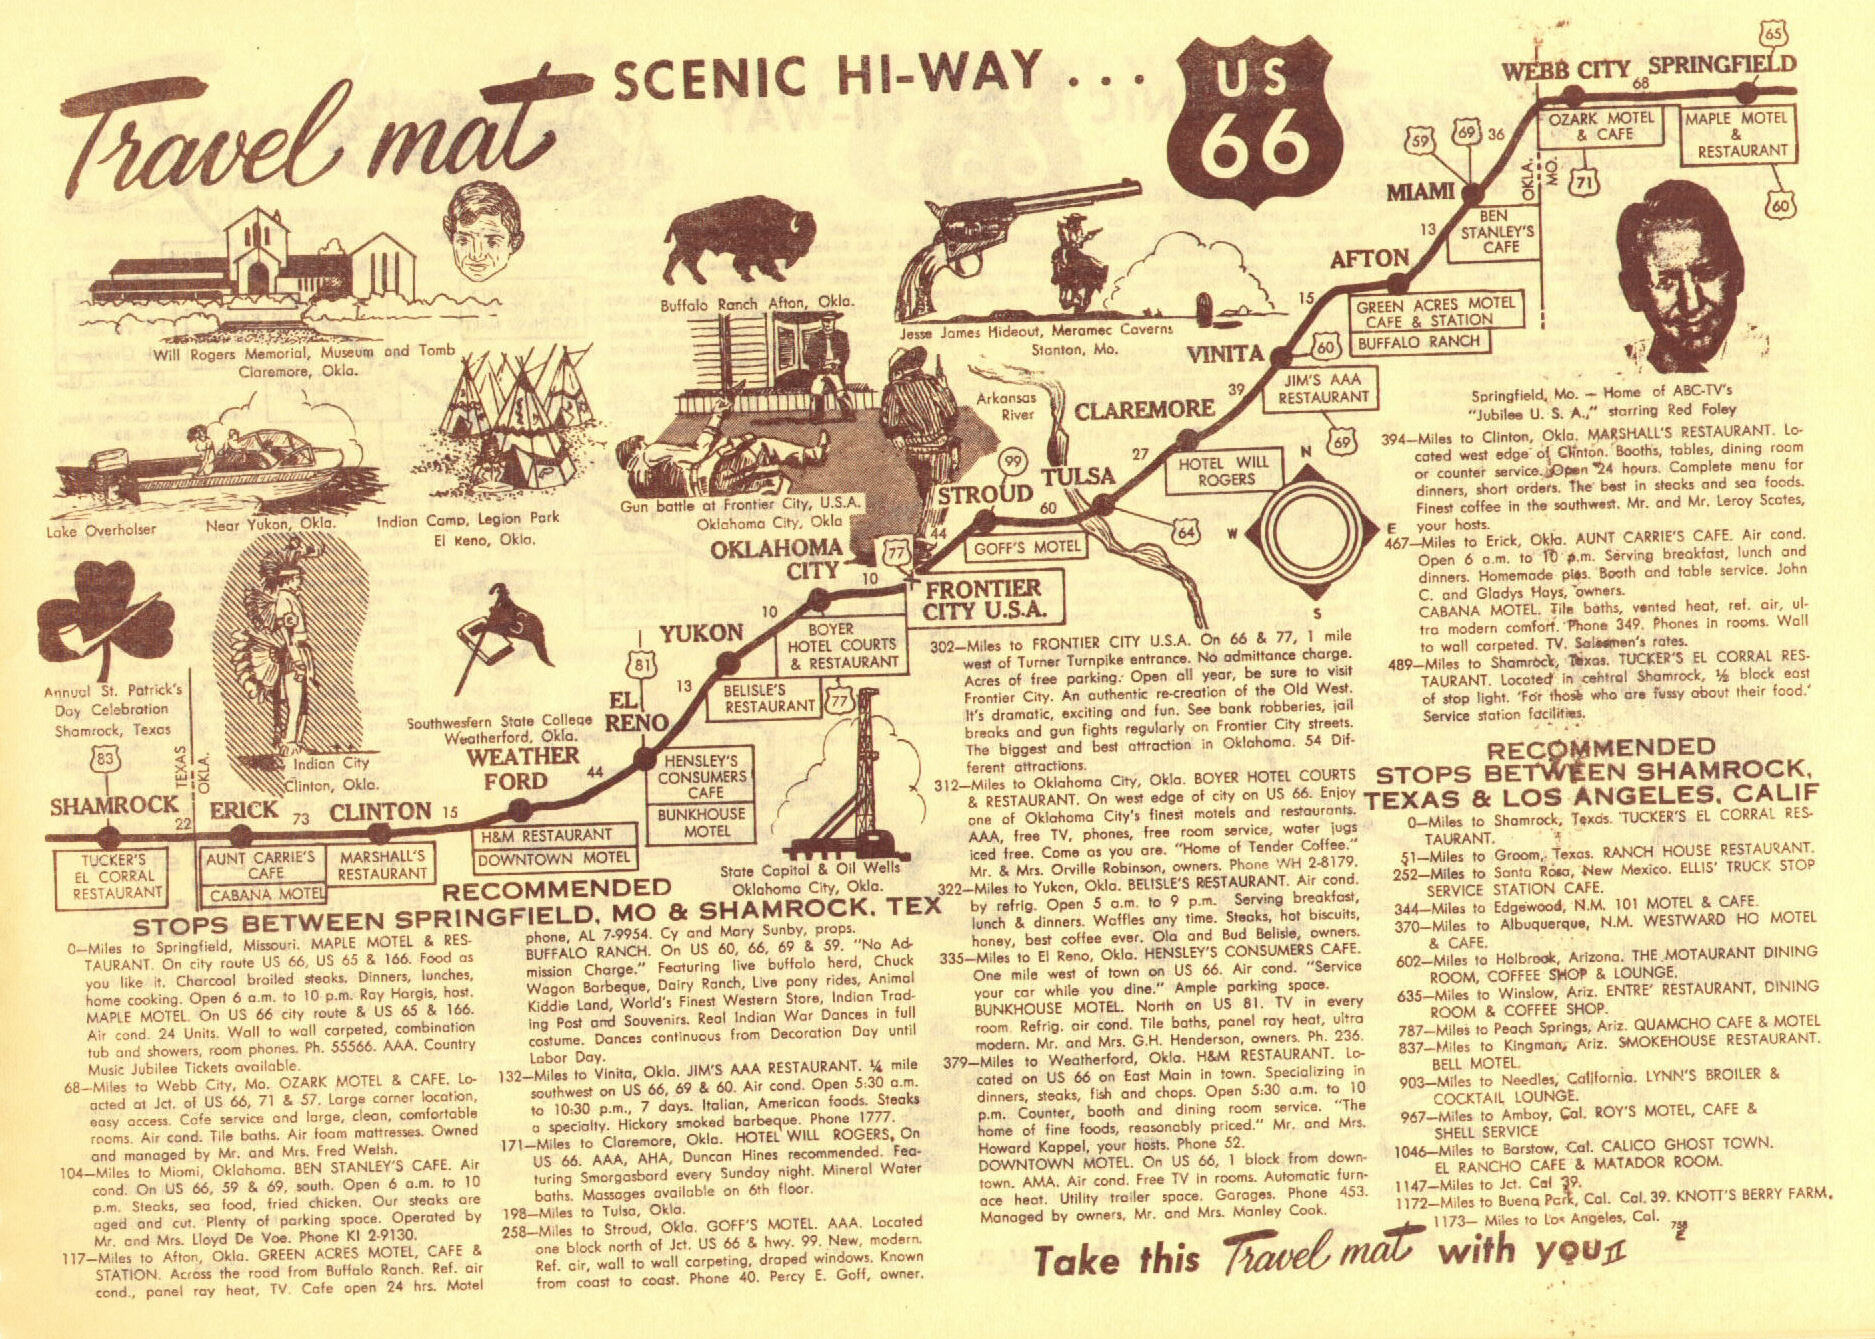 Historic Route 66 California Map.Route 66 Stops Between Shamrock Texas And Los Angeles California Map